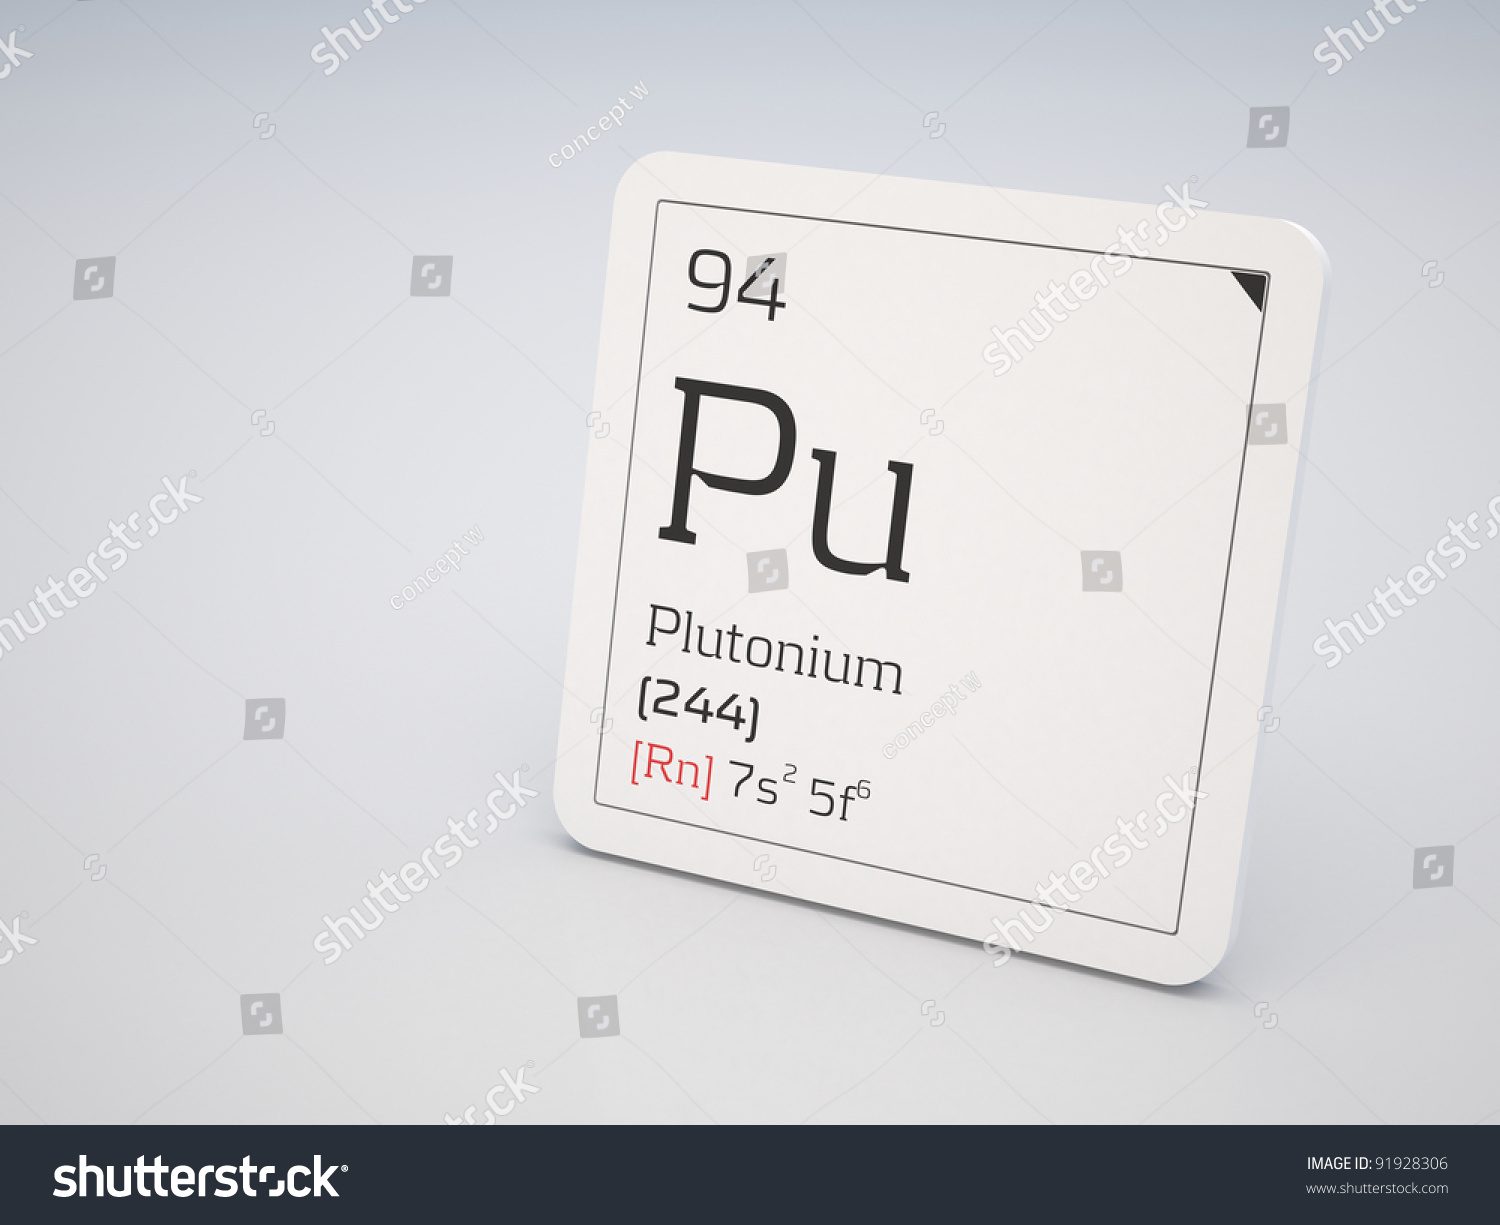 Plutonium element periodic table stock illustration 91928306 plutonium element of the periodic table gamestrikefo Image collections